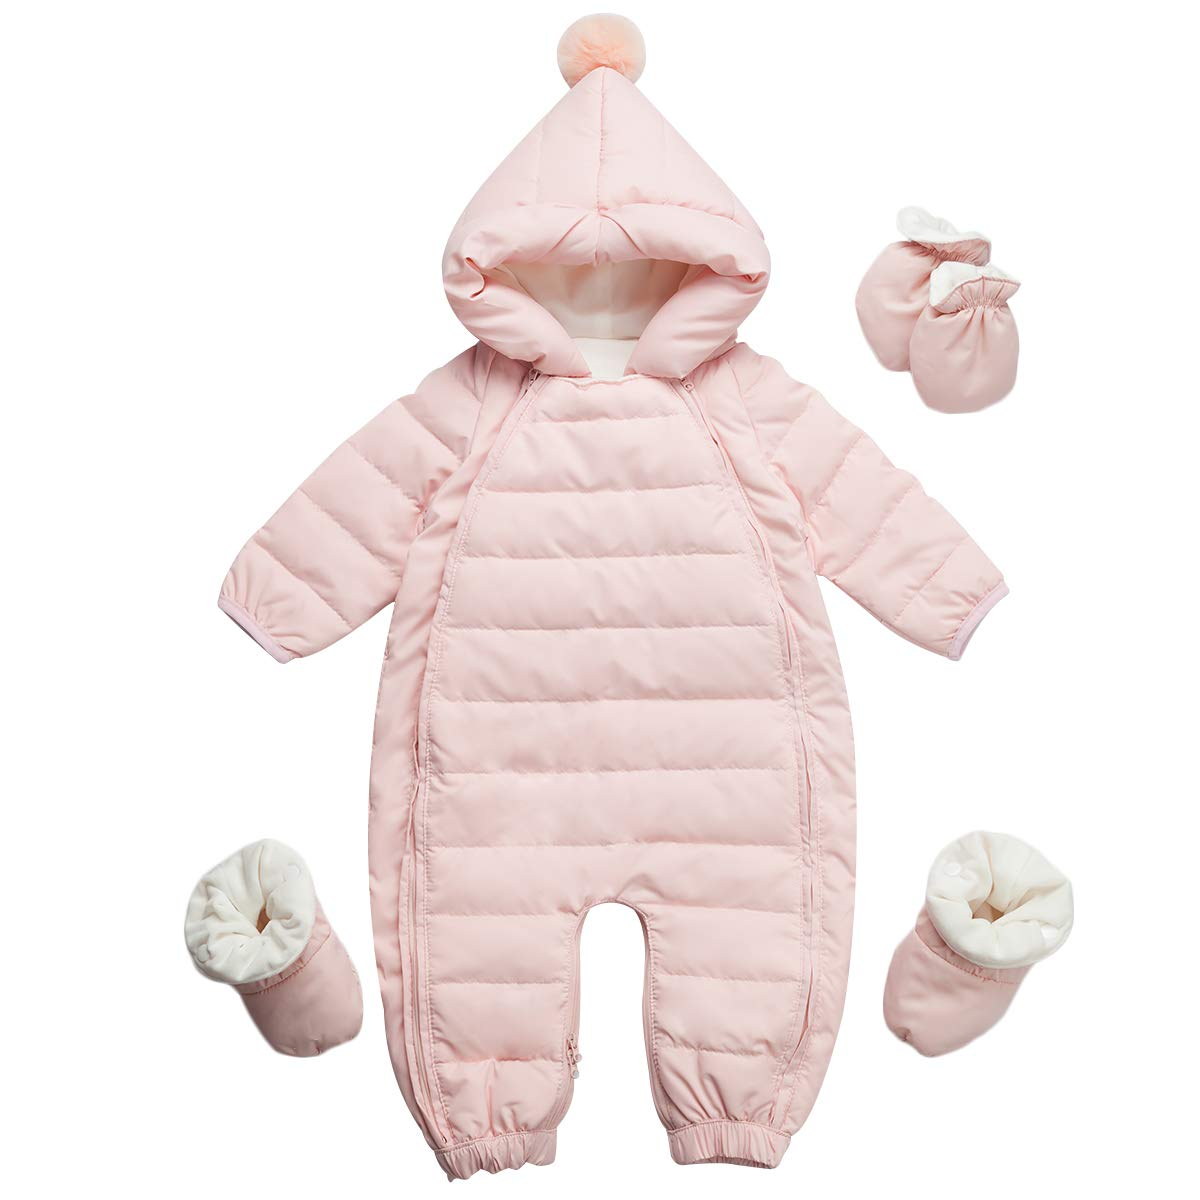 famuka Baby Winter Warm Down Snowsuits Solid Color Hooded Puffer Outwear (Pink, 9-12 Months) by famuka